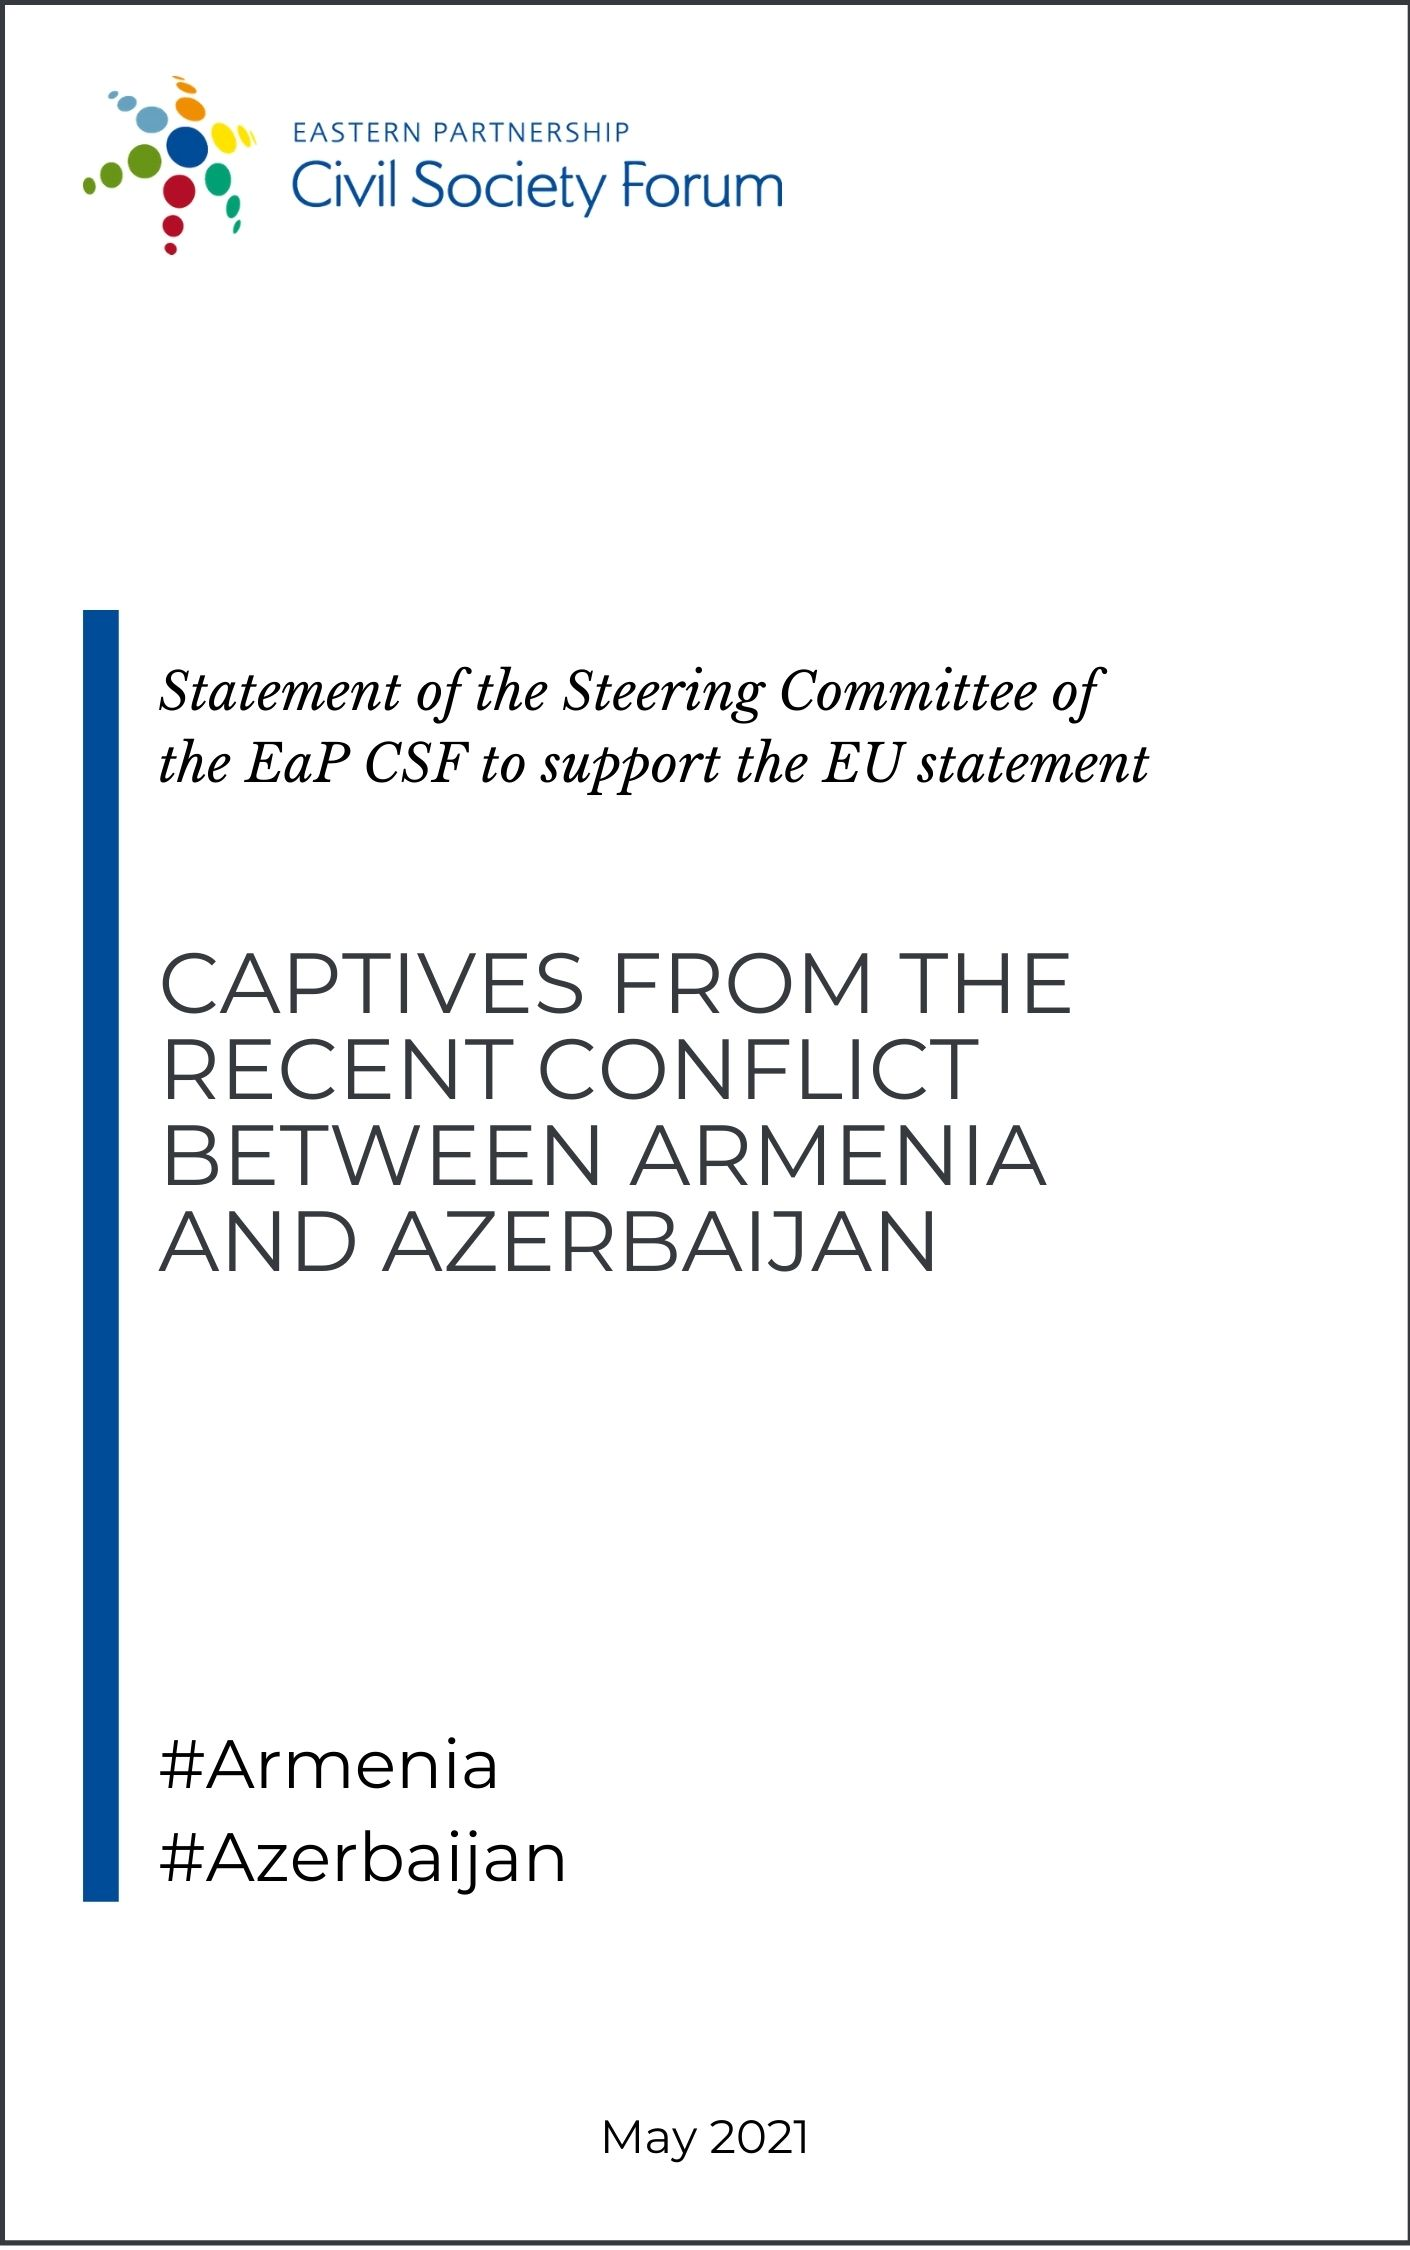 EaP CSF Steering Committee statement to support the EU Statement on captives from the recent conflict between Armenia and Azerbaijan